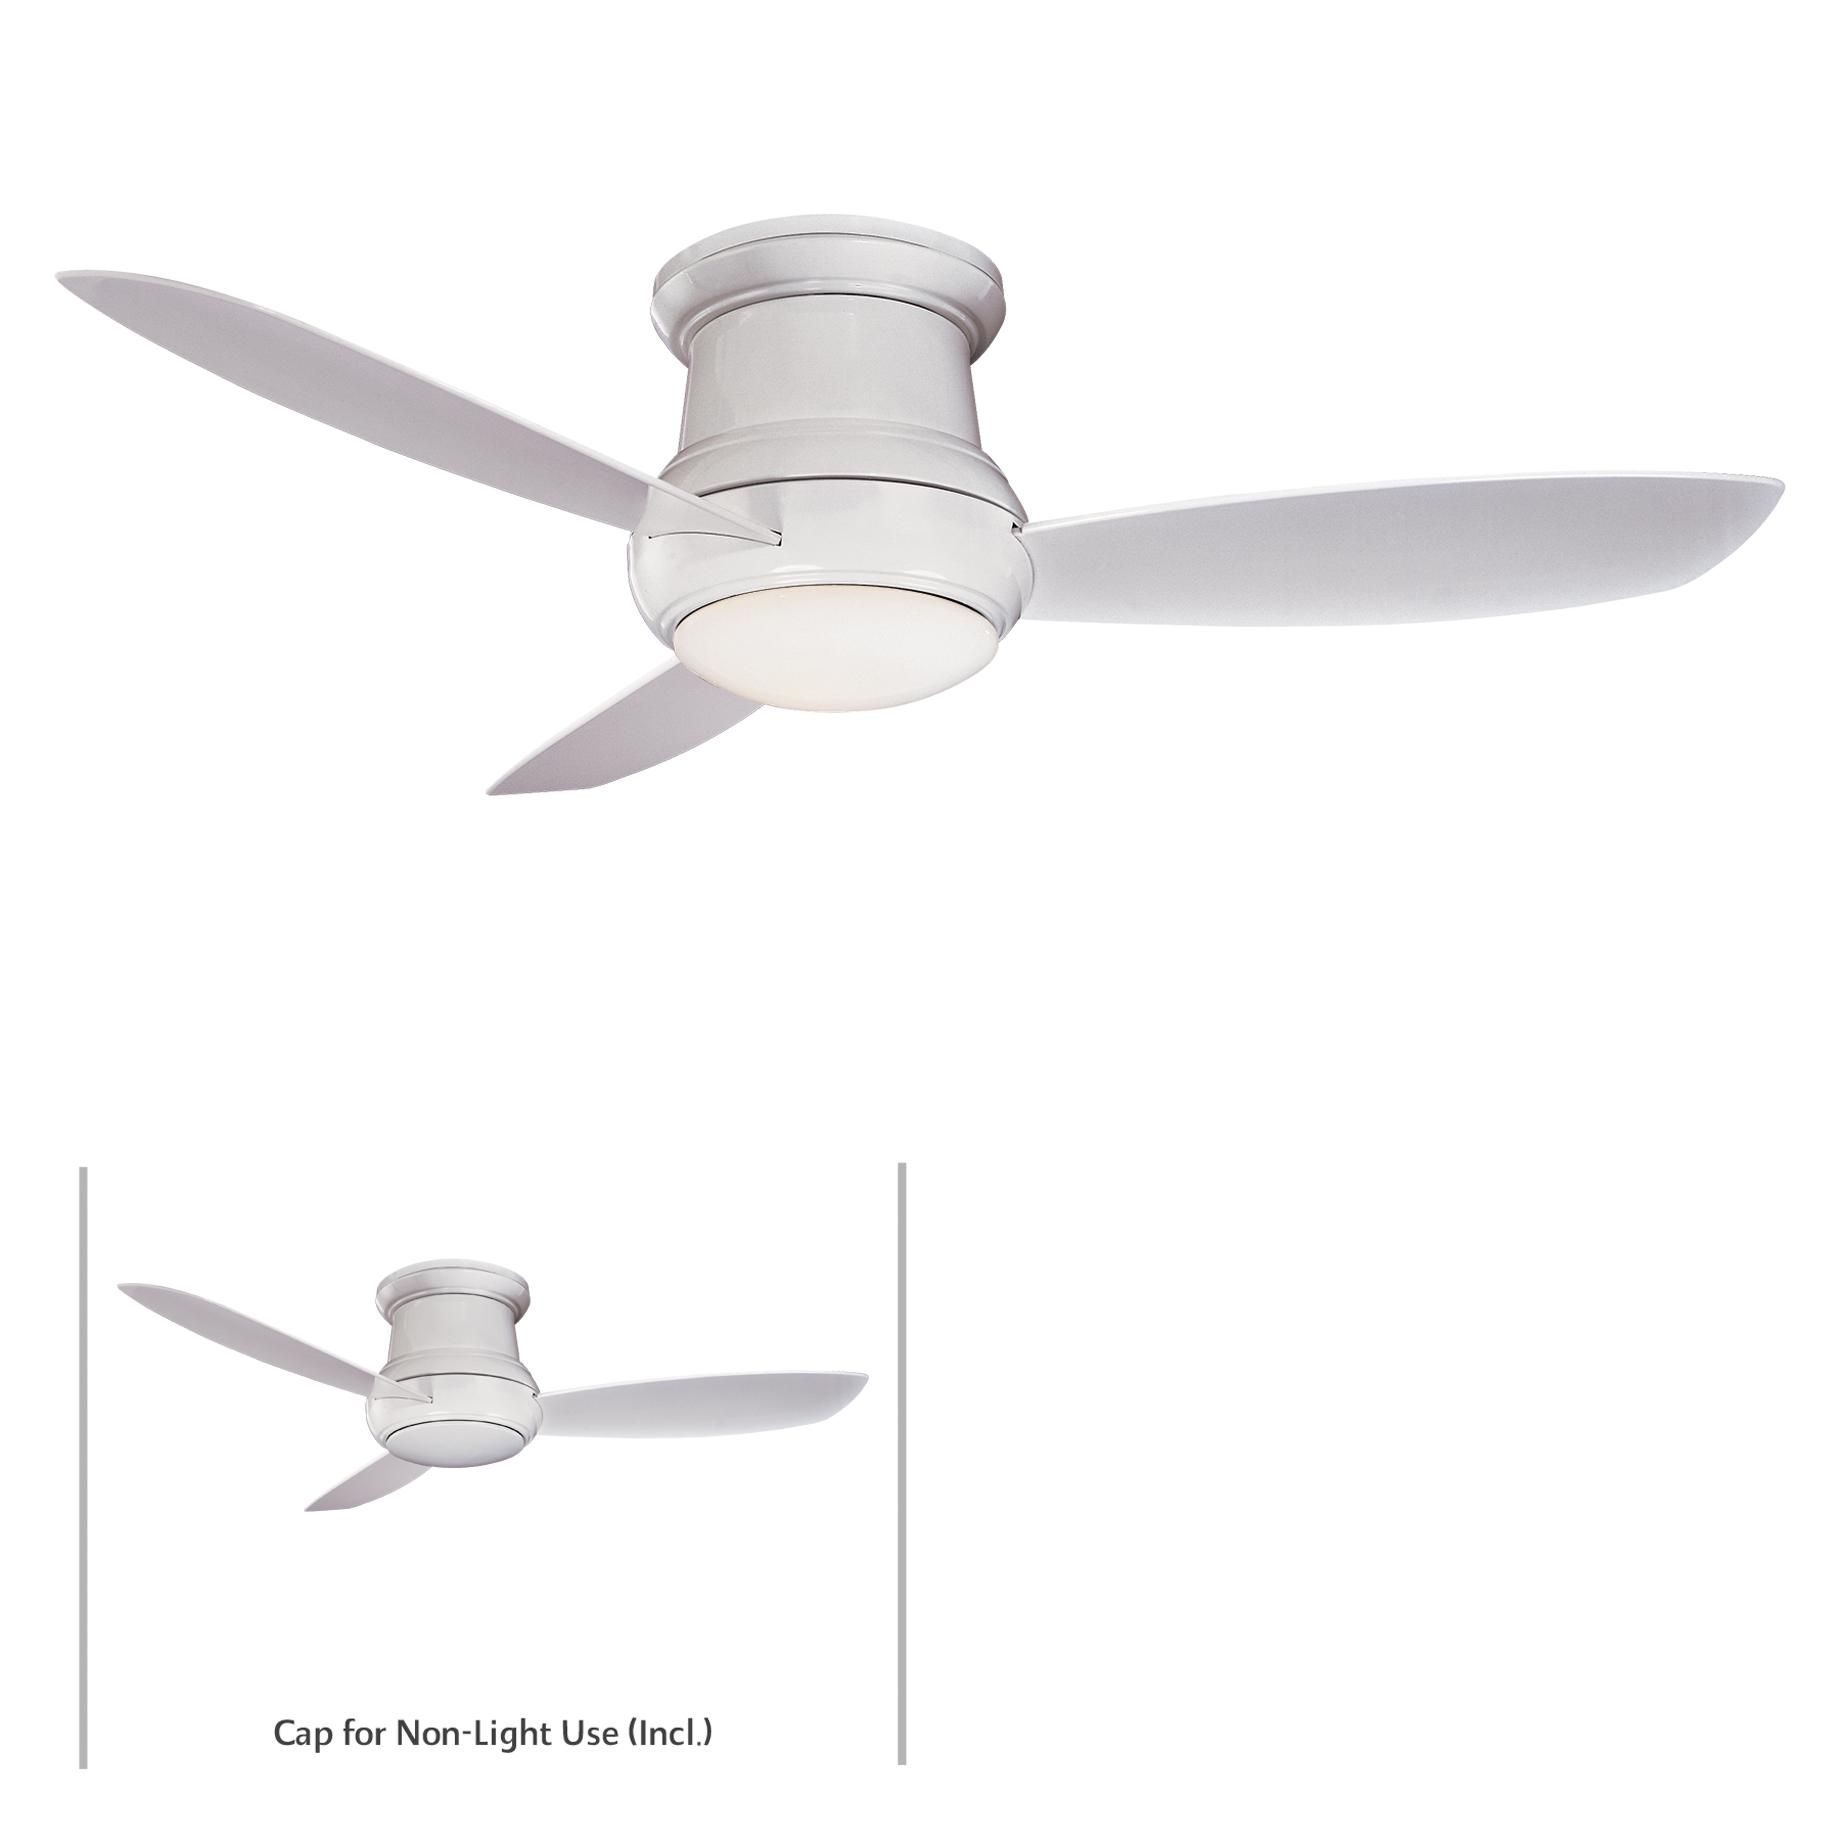 Minka aire concept ii 52 wet f574 wh airflow rating 5699 cfm minka aire concept ii 52 wet f574 wh airflow rating 5699 cfm outdoor ceiling fansceiling aloadofball Images